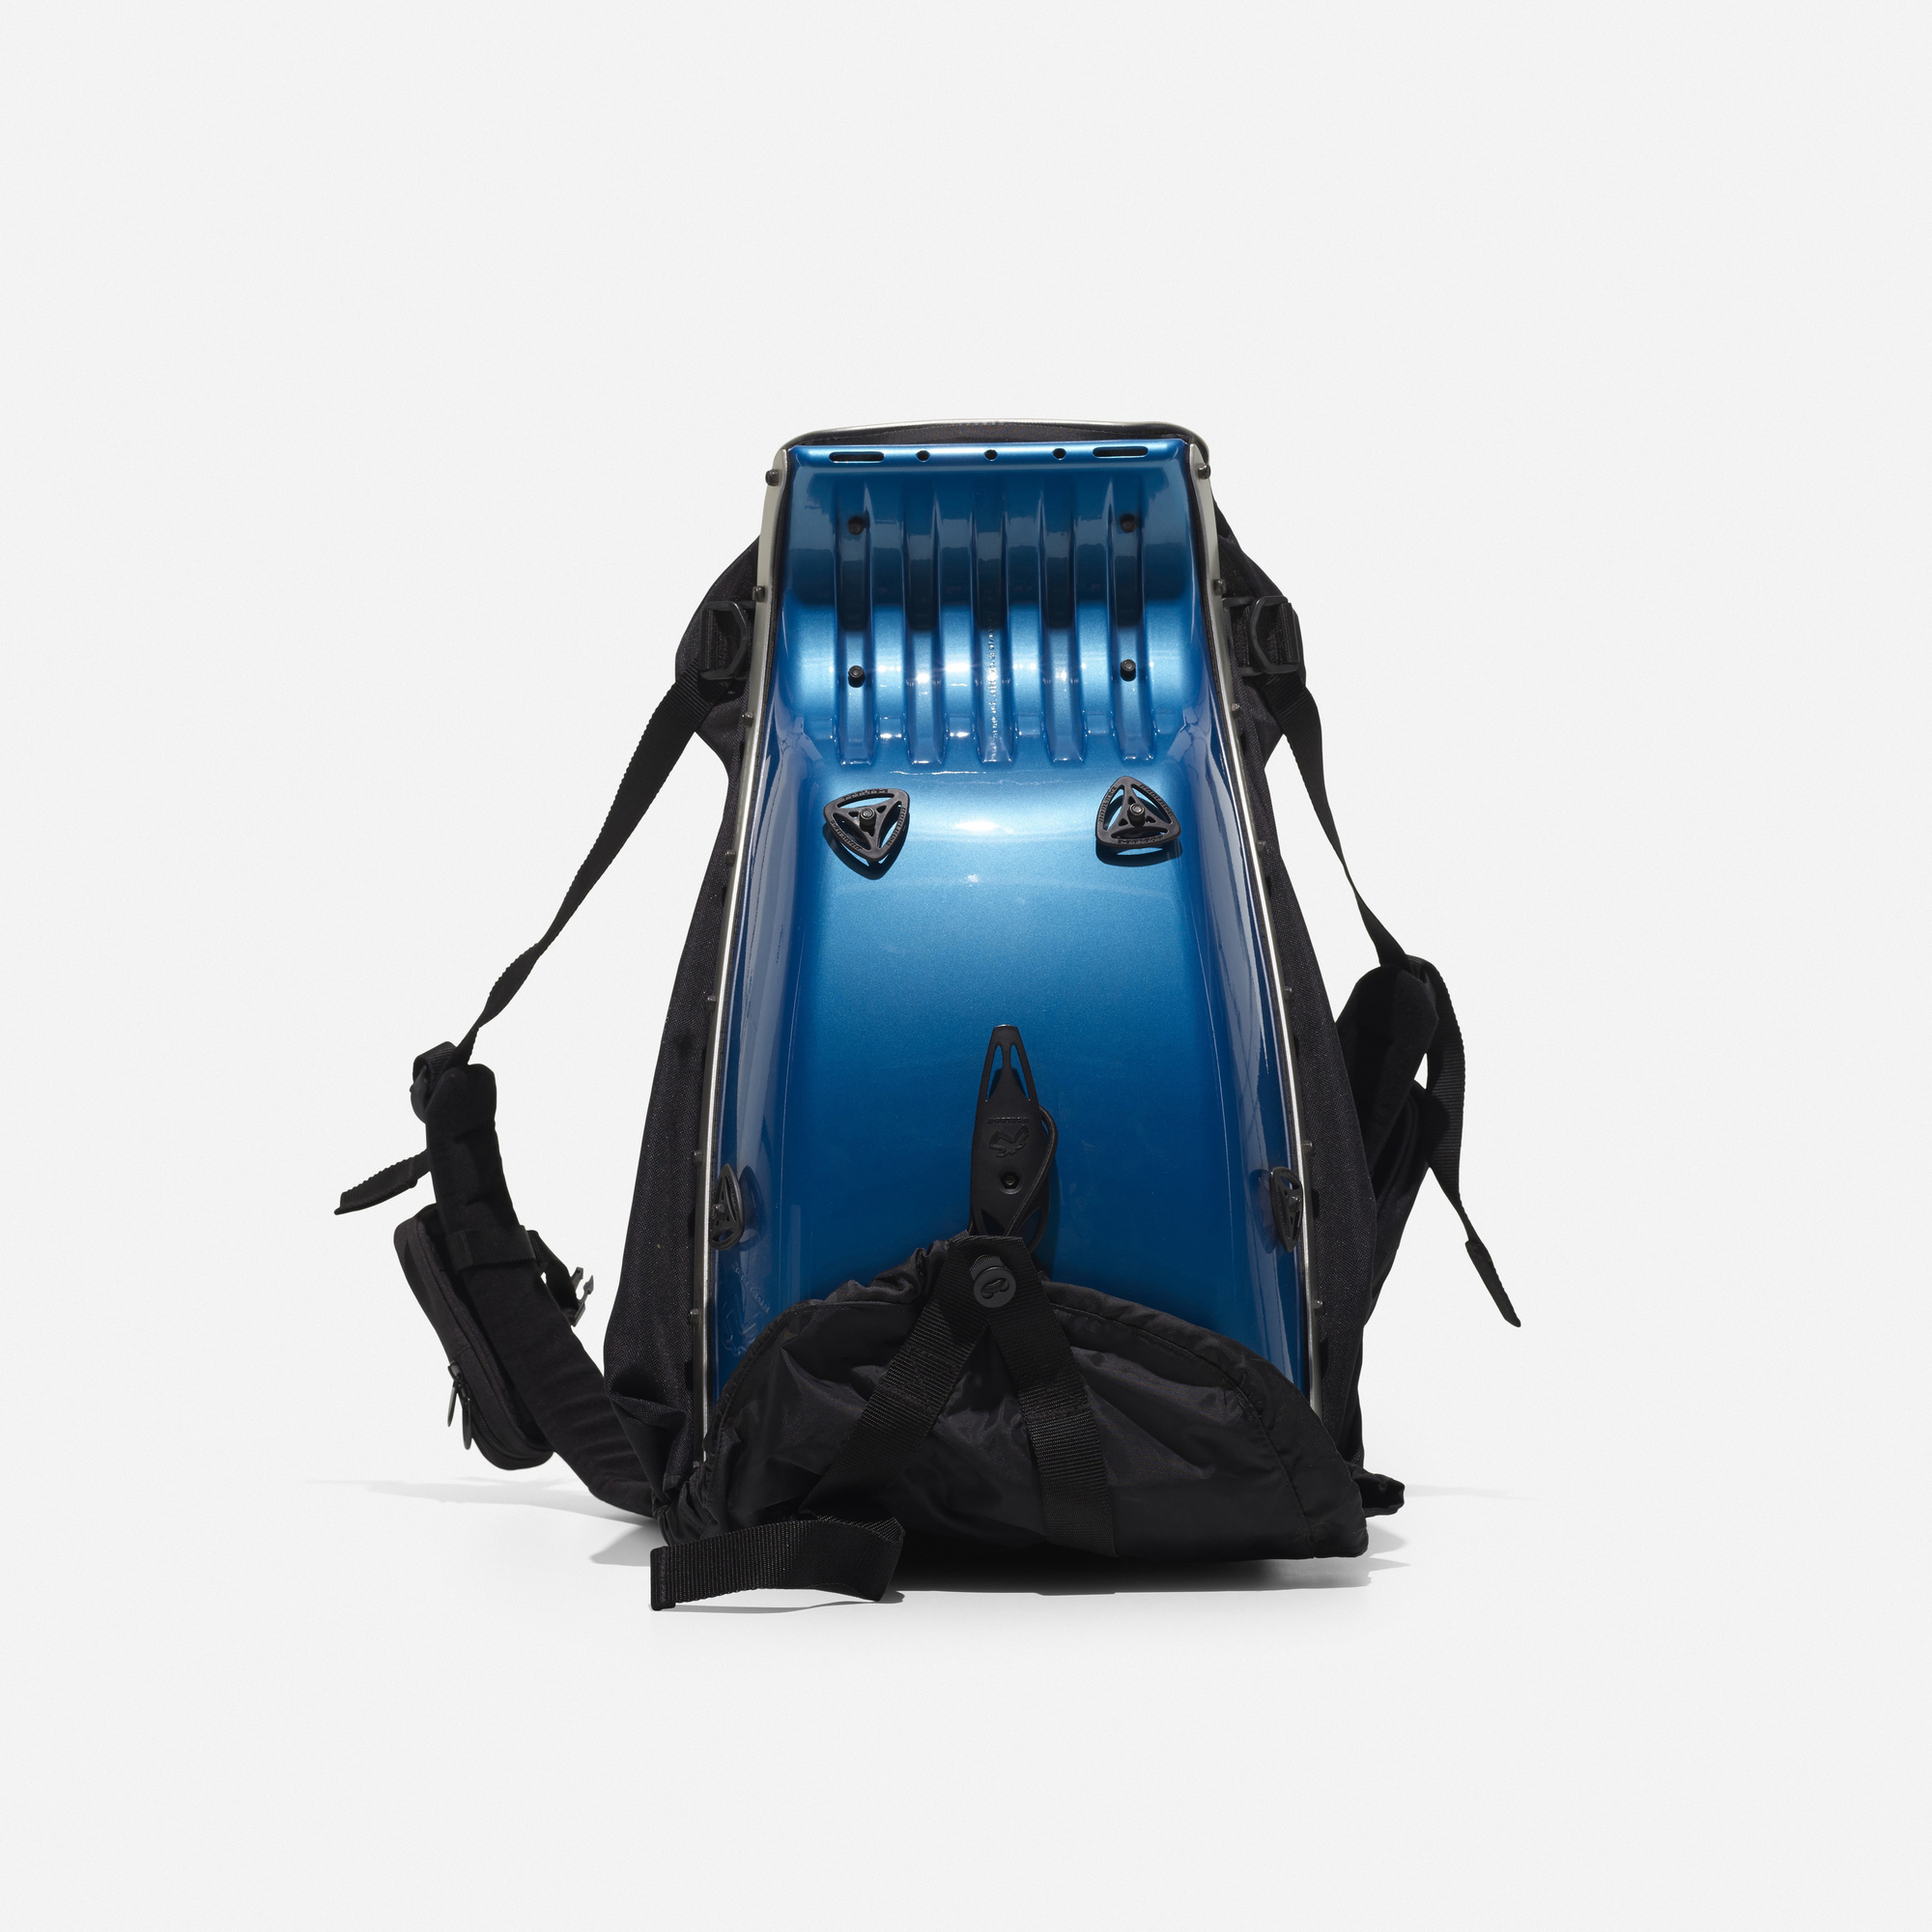 191: Boblbee / Megalopolis Sport backpack (2 of 3)